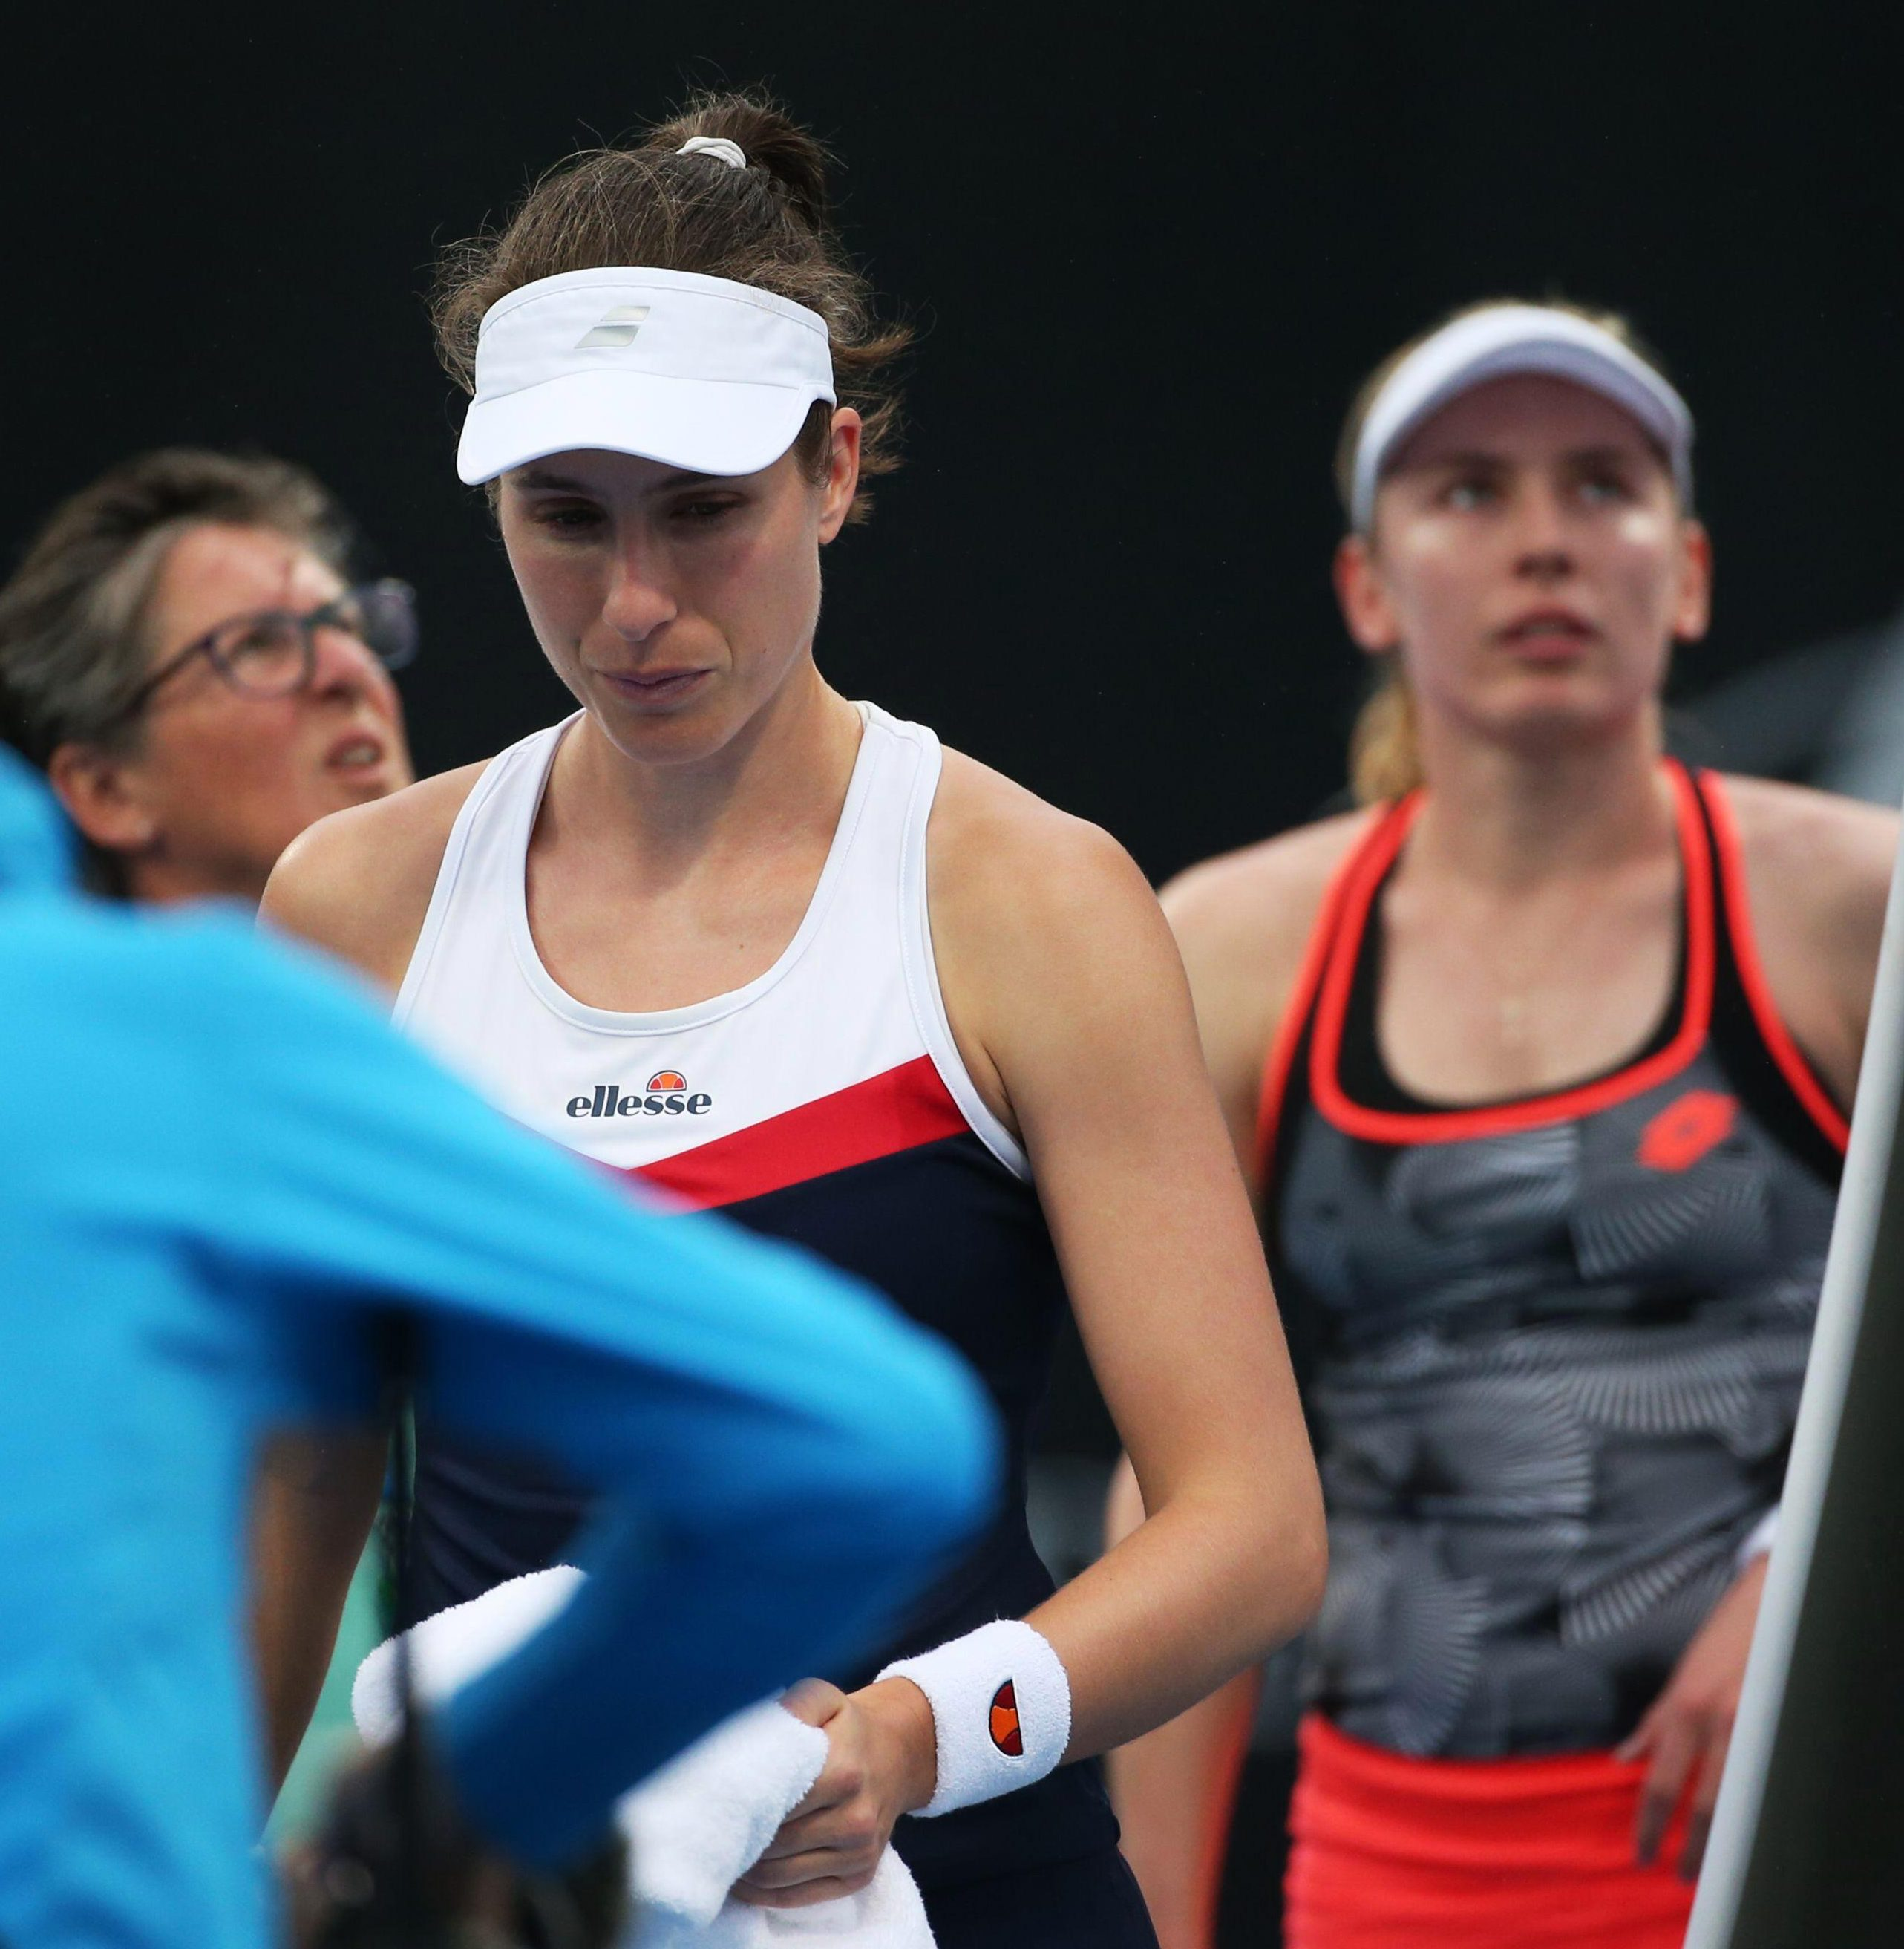 The Sydney-born Konta lasted just 18 minutes against Ekaterina Alexandrova and was trailing 4-1 in the opening set